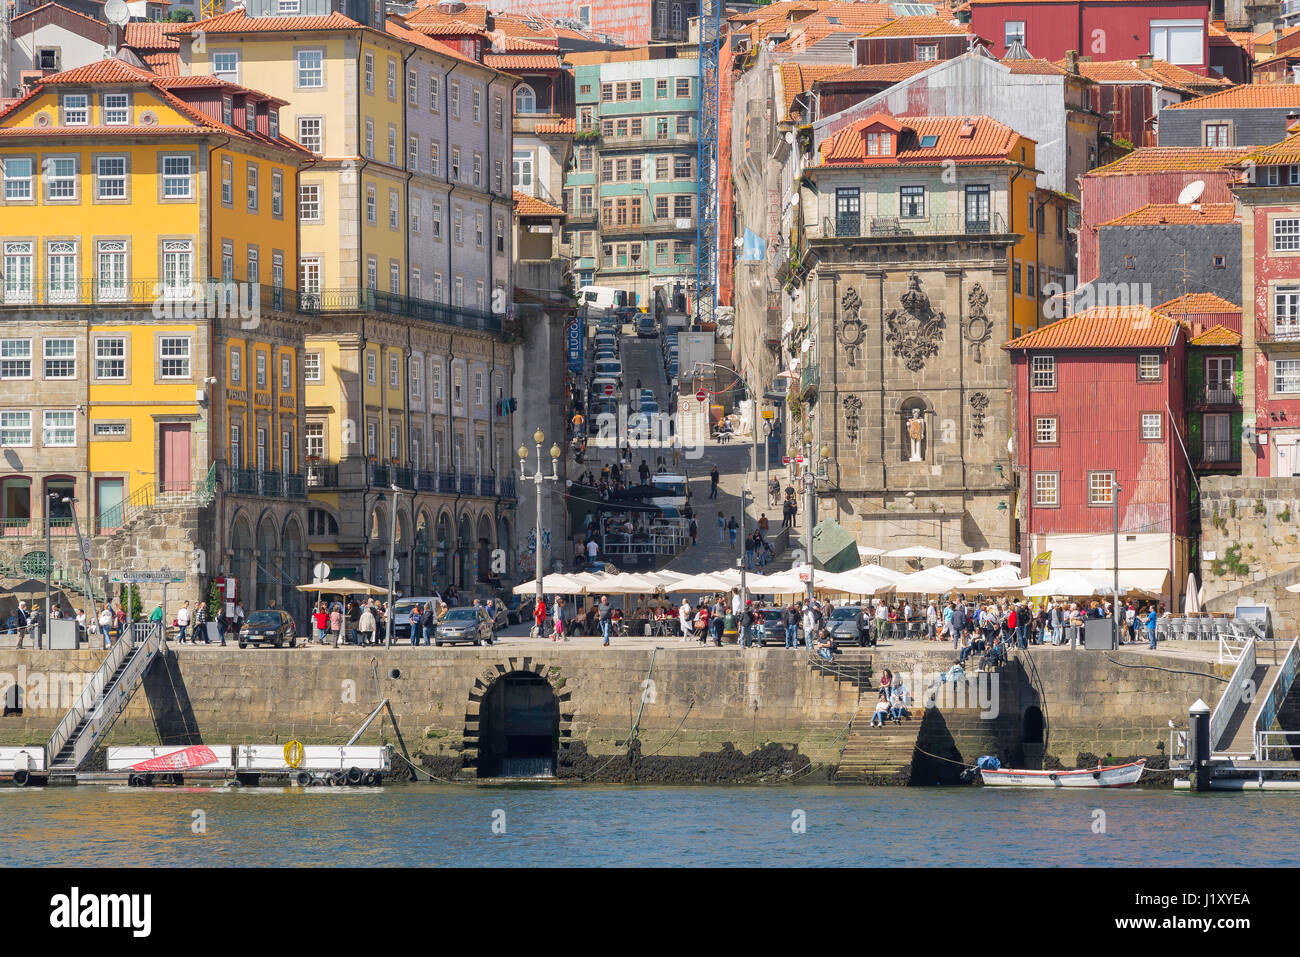 Ribeira Porto Portugal, view of the historic old town waterfront buildings of the Ribeira district along the Douro - Stock Image